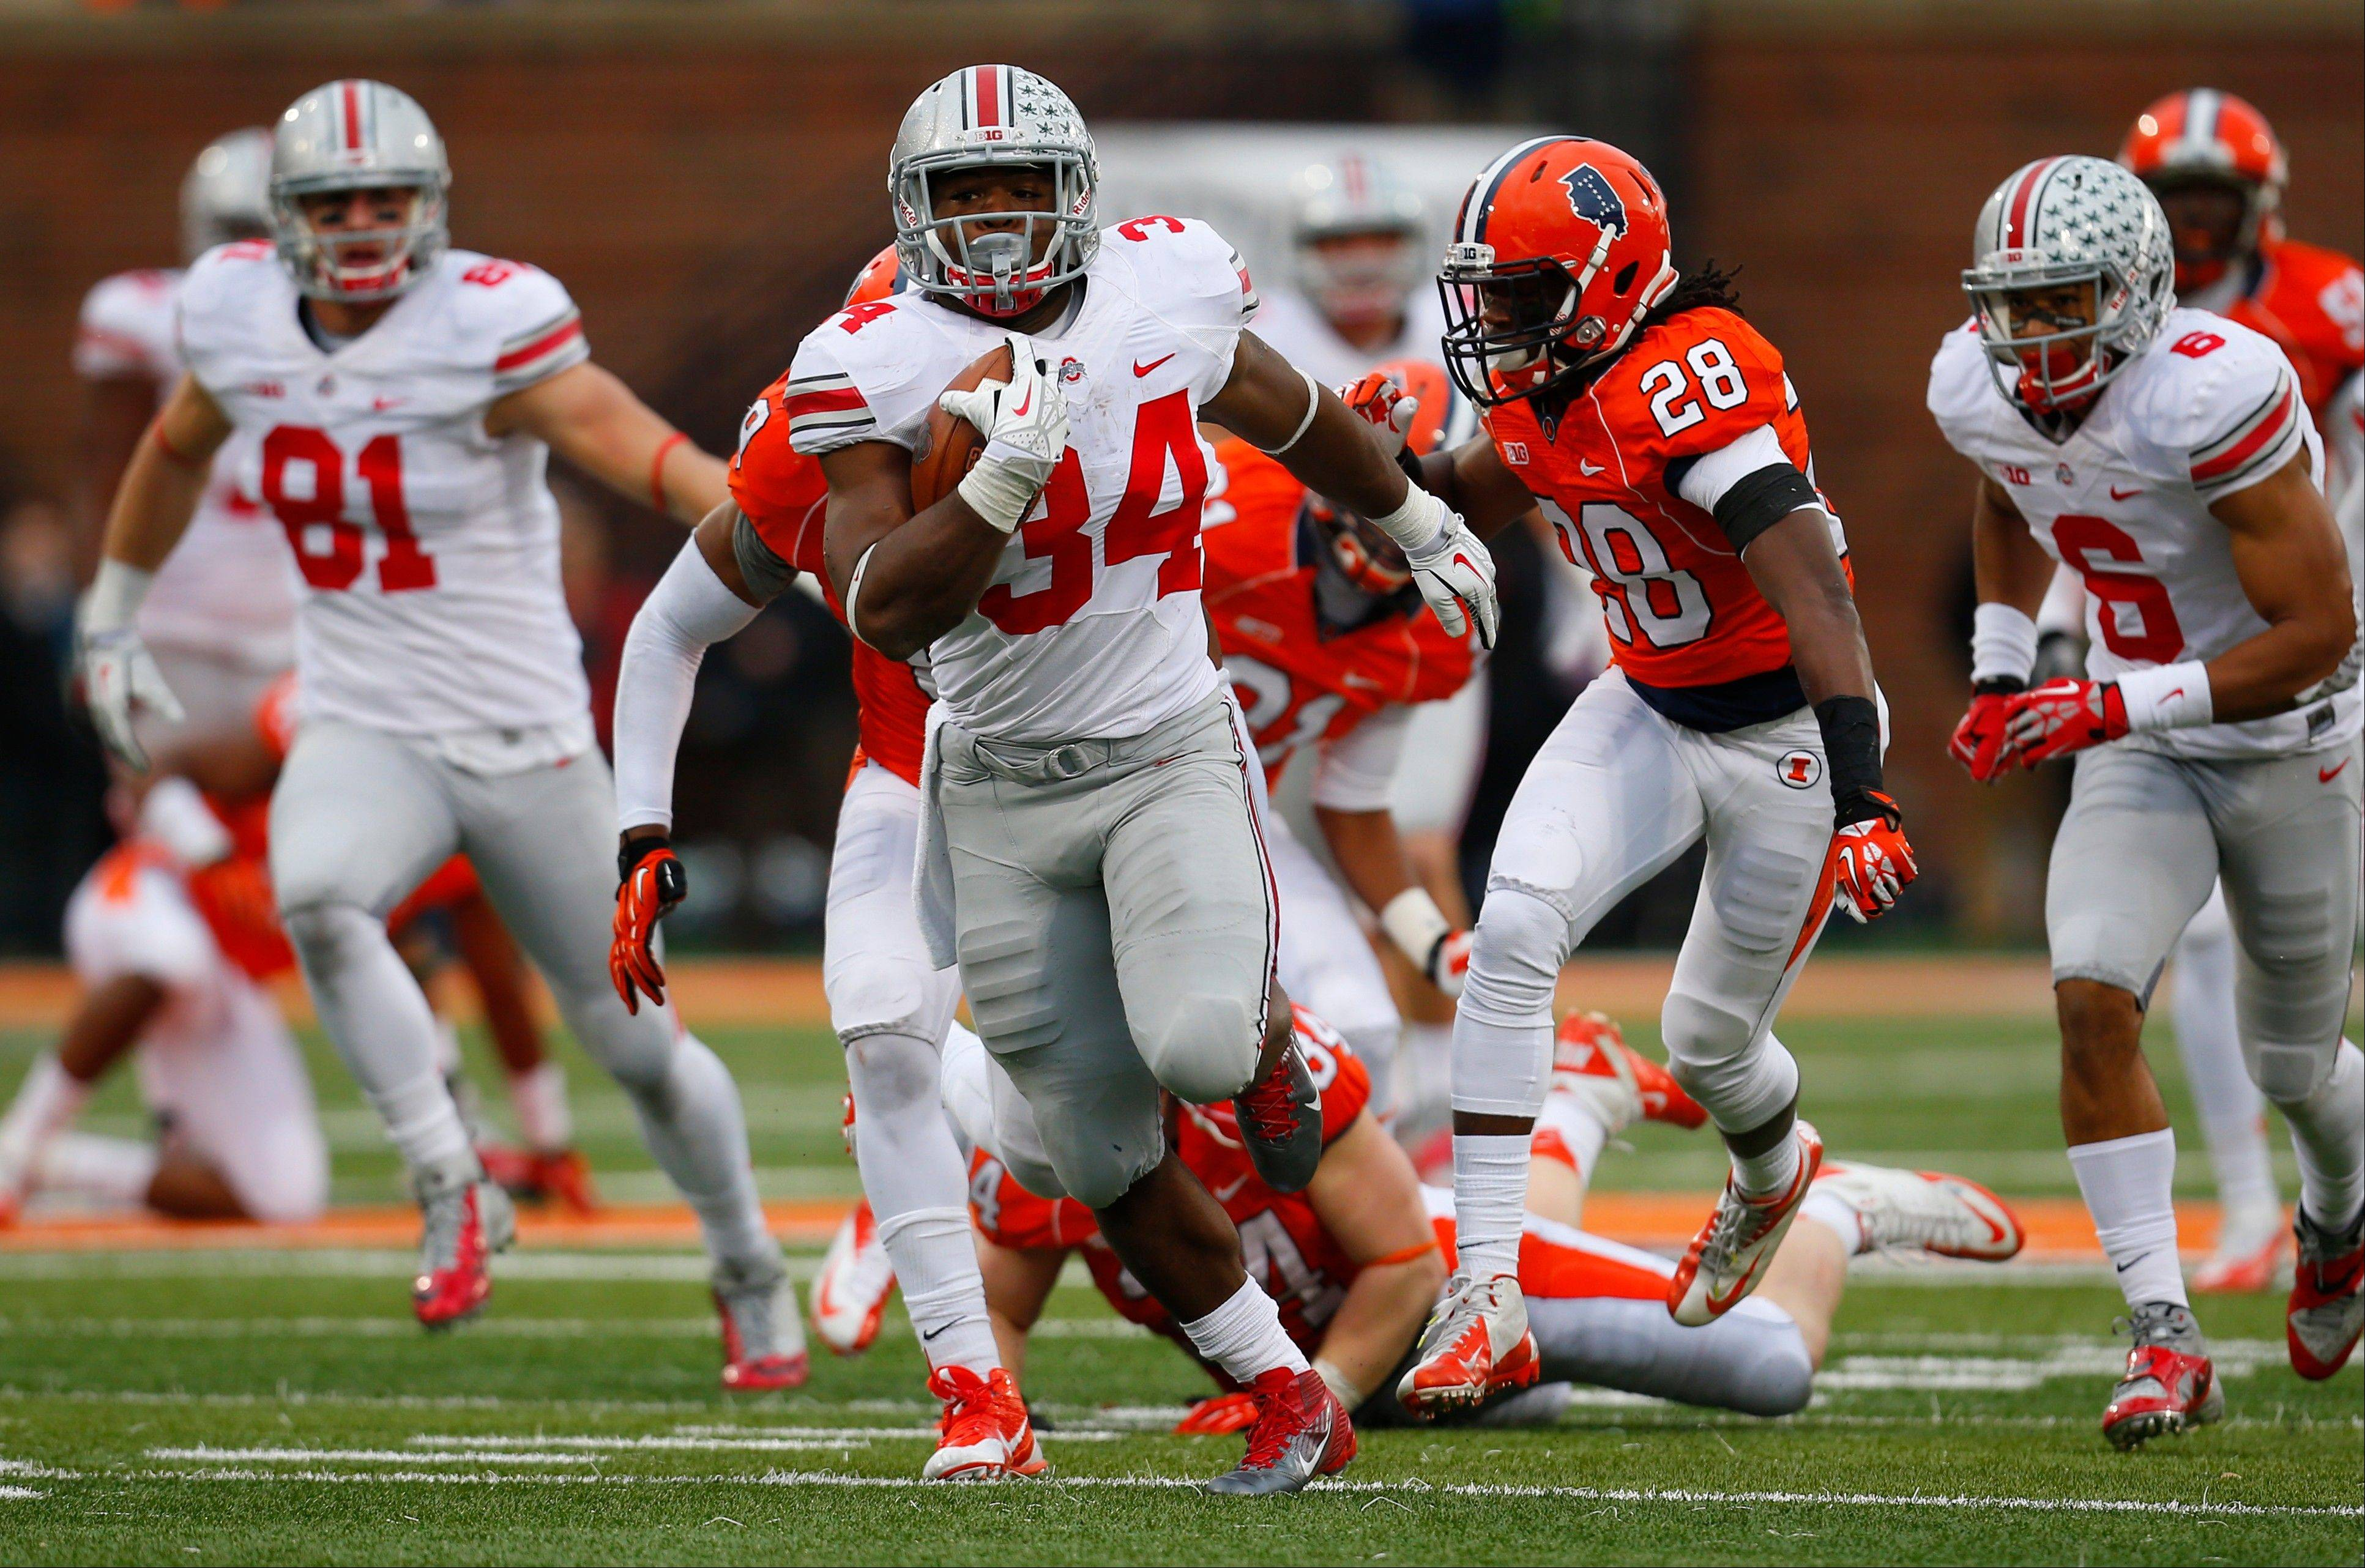 Ohio State running back Carlos Hyde (34) runs for a 51-yard touchdown during the second half of an NCAA college football game against Illinois on Saturday, Nov. 16, 2013, in Champaign, Ill. Ohio State won the game 60-35.